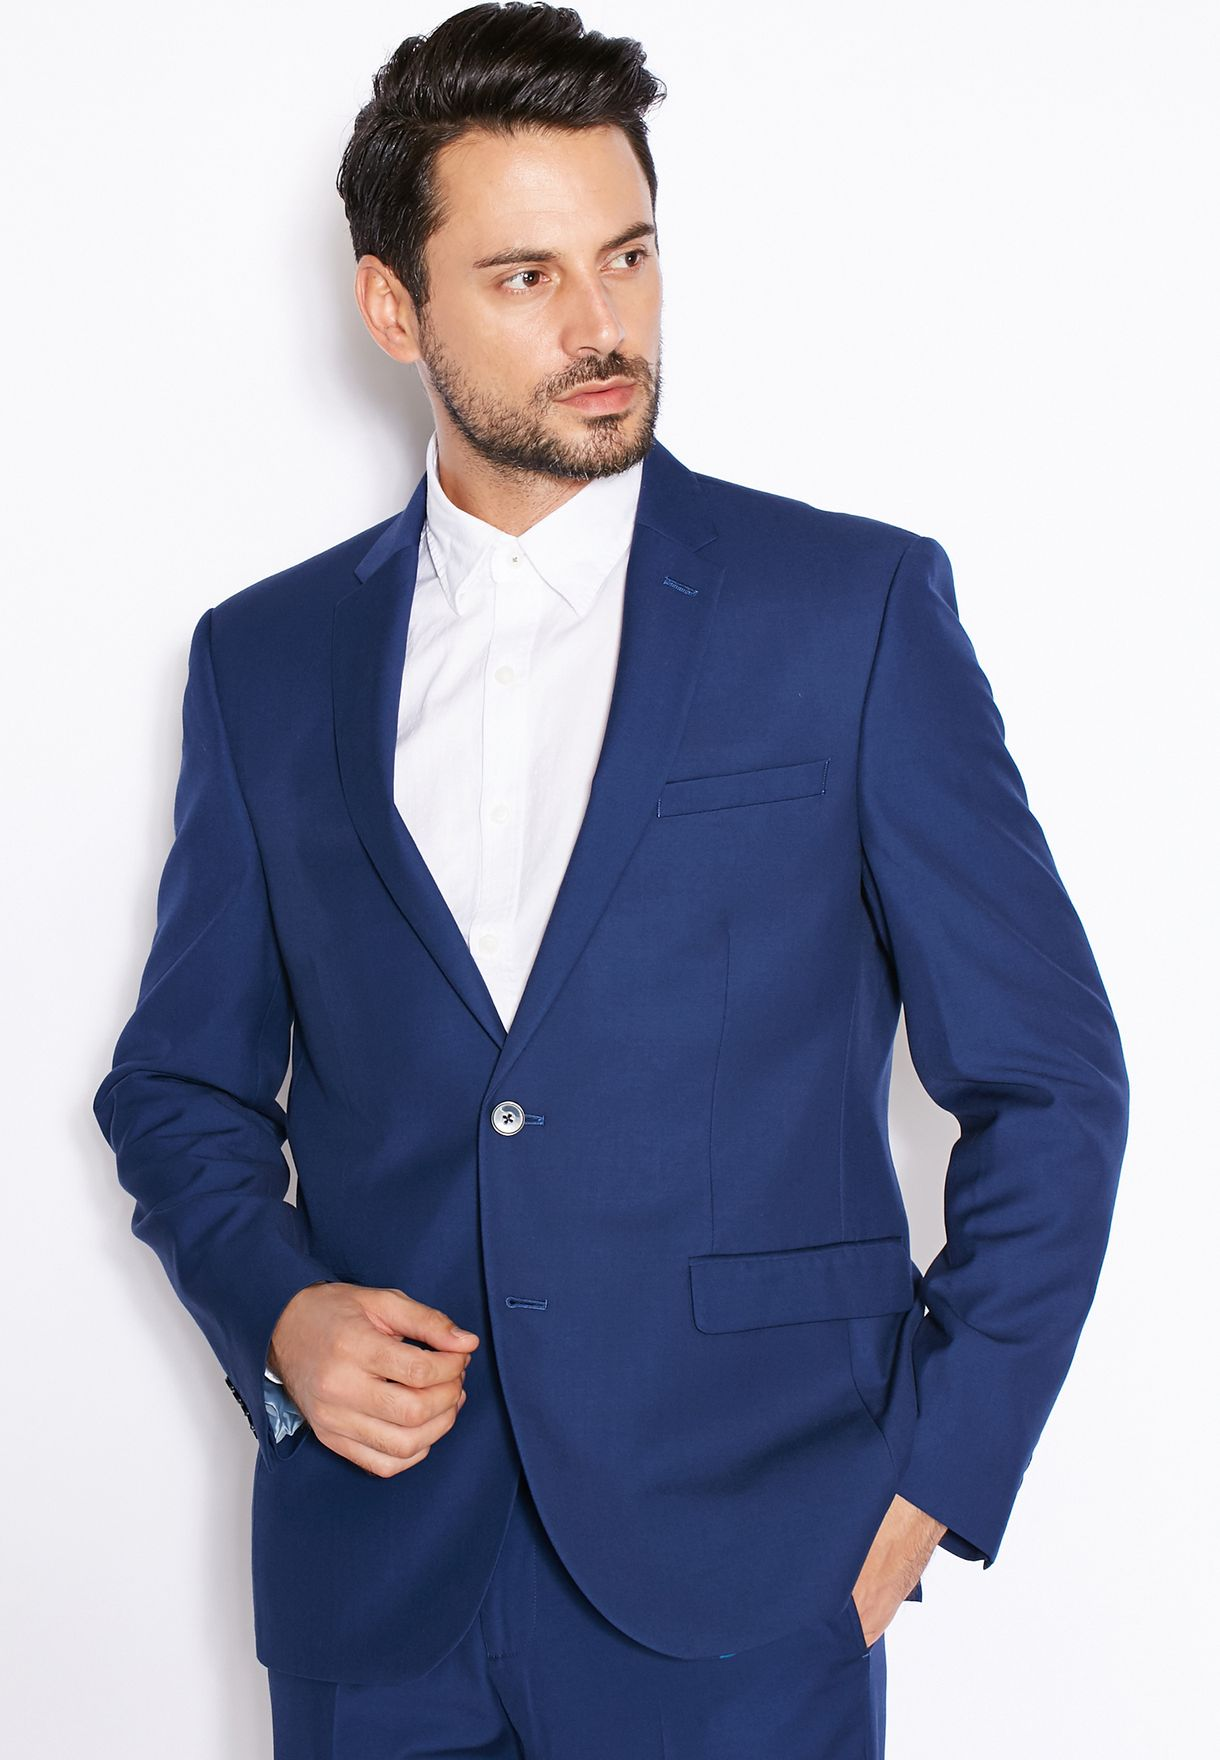 f3af4e04b4c0 Shop Burton blue Essential Navy Slim Fit Suit Jacket 02S05HBLU for ...